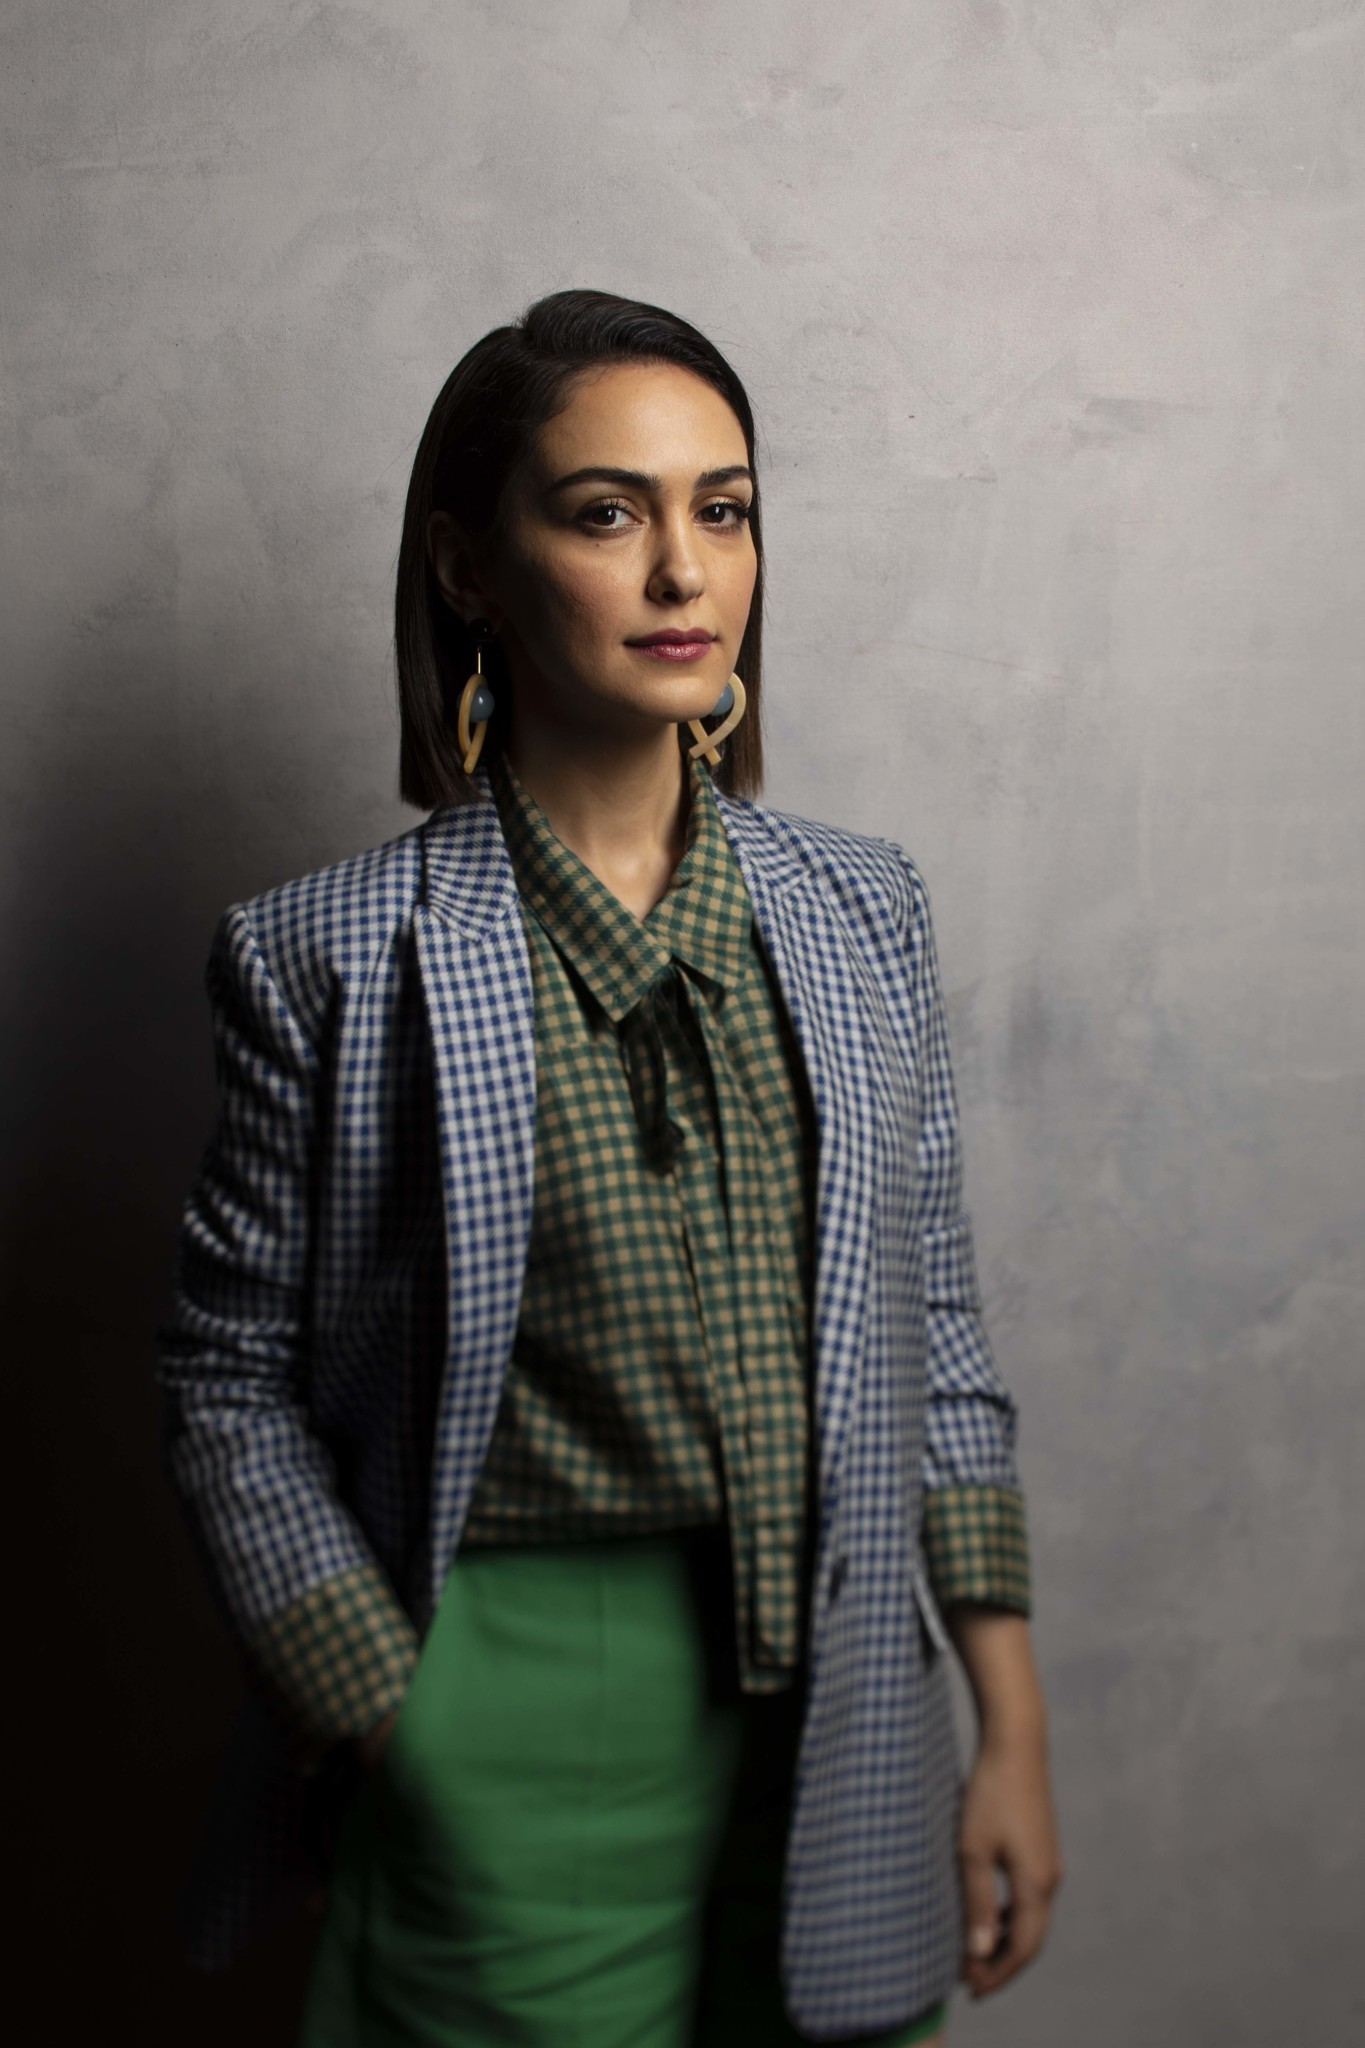 TORONTO, ONT. — SEPTEMBER 07, 2018-- Actress Nazanin Boniadi, from the film